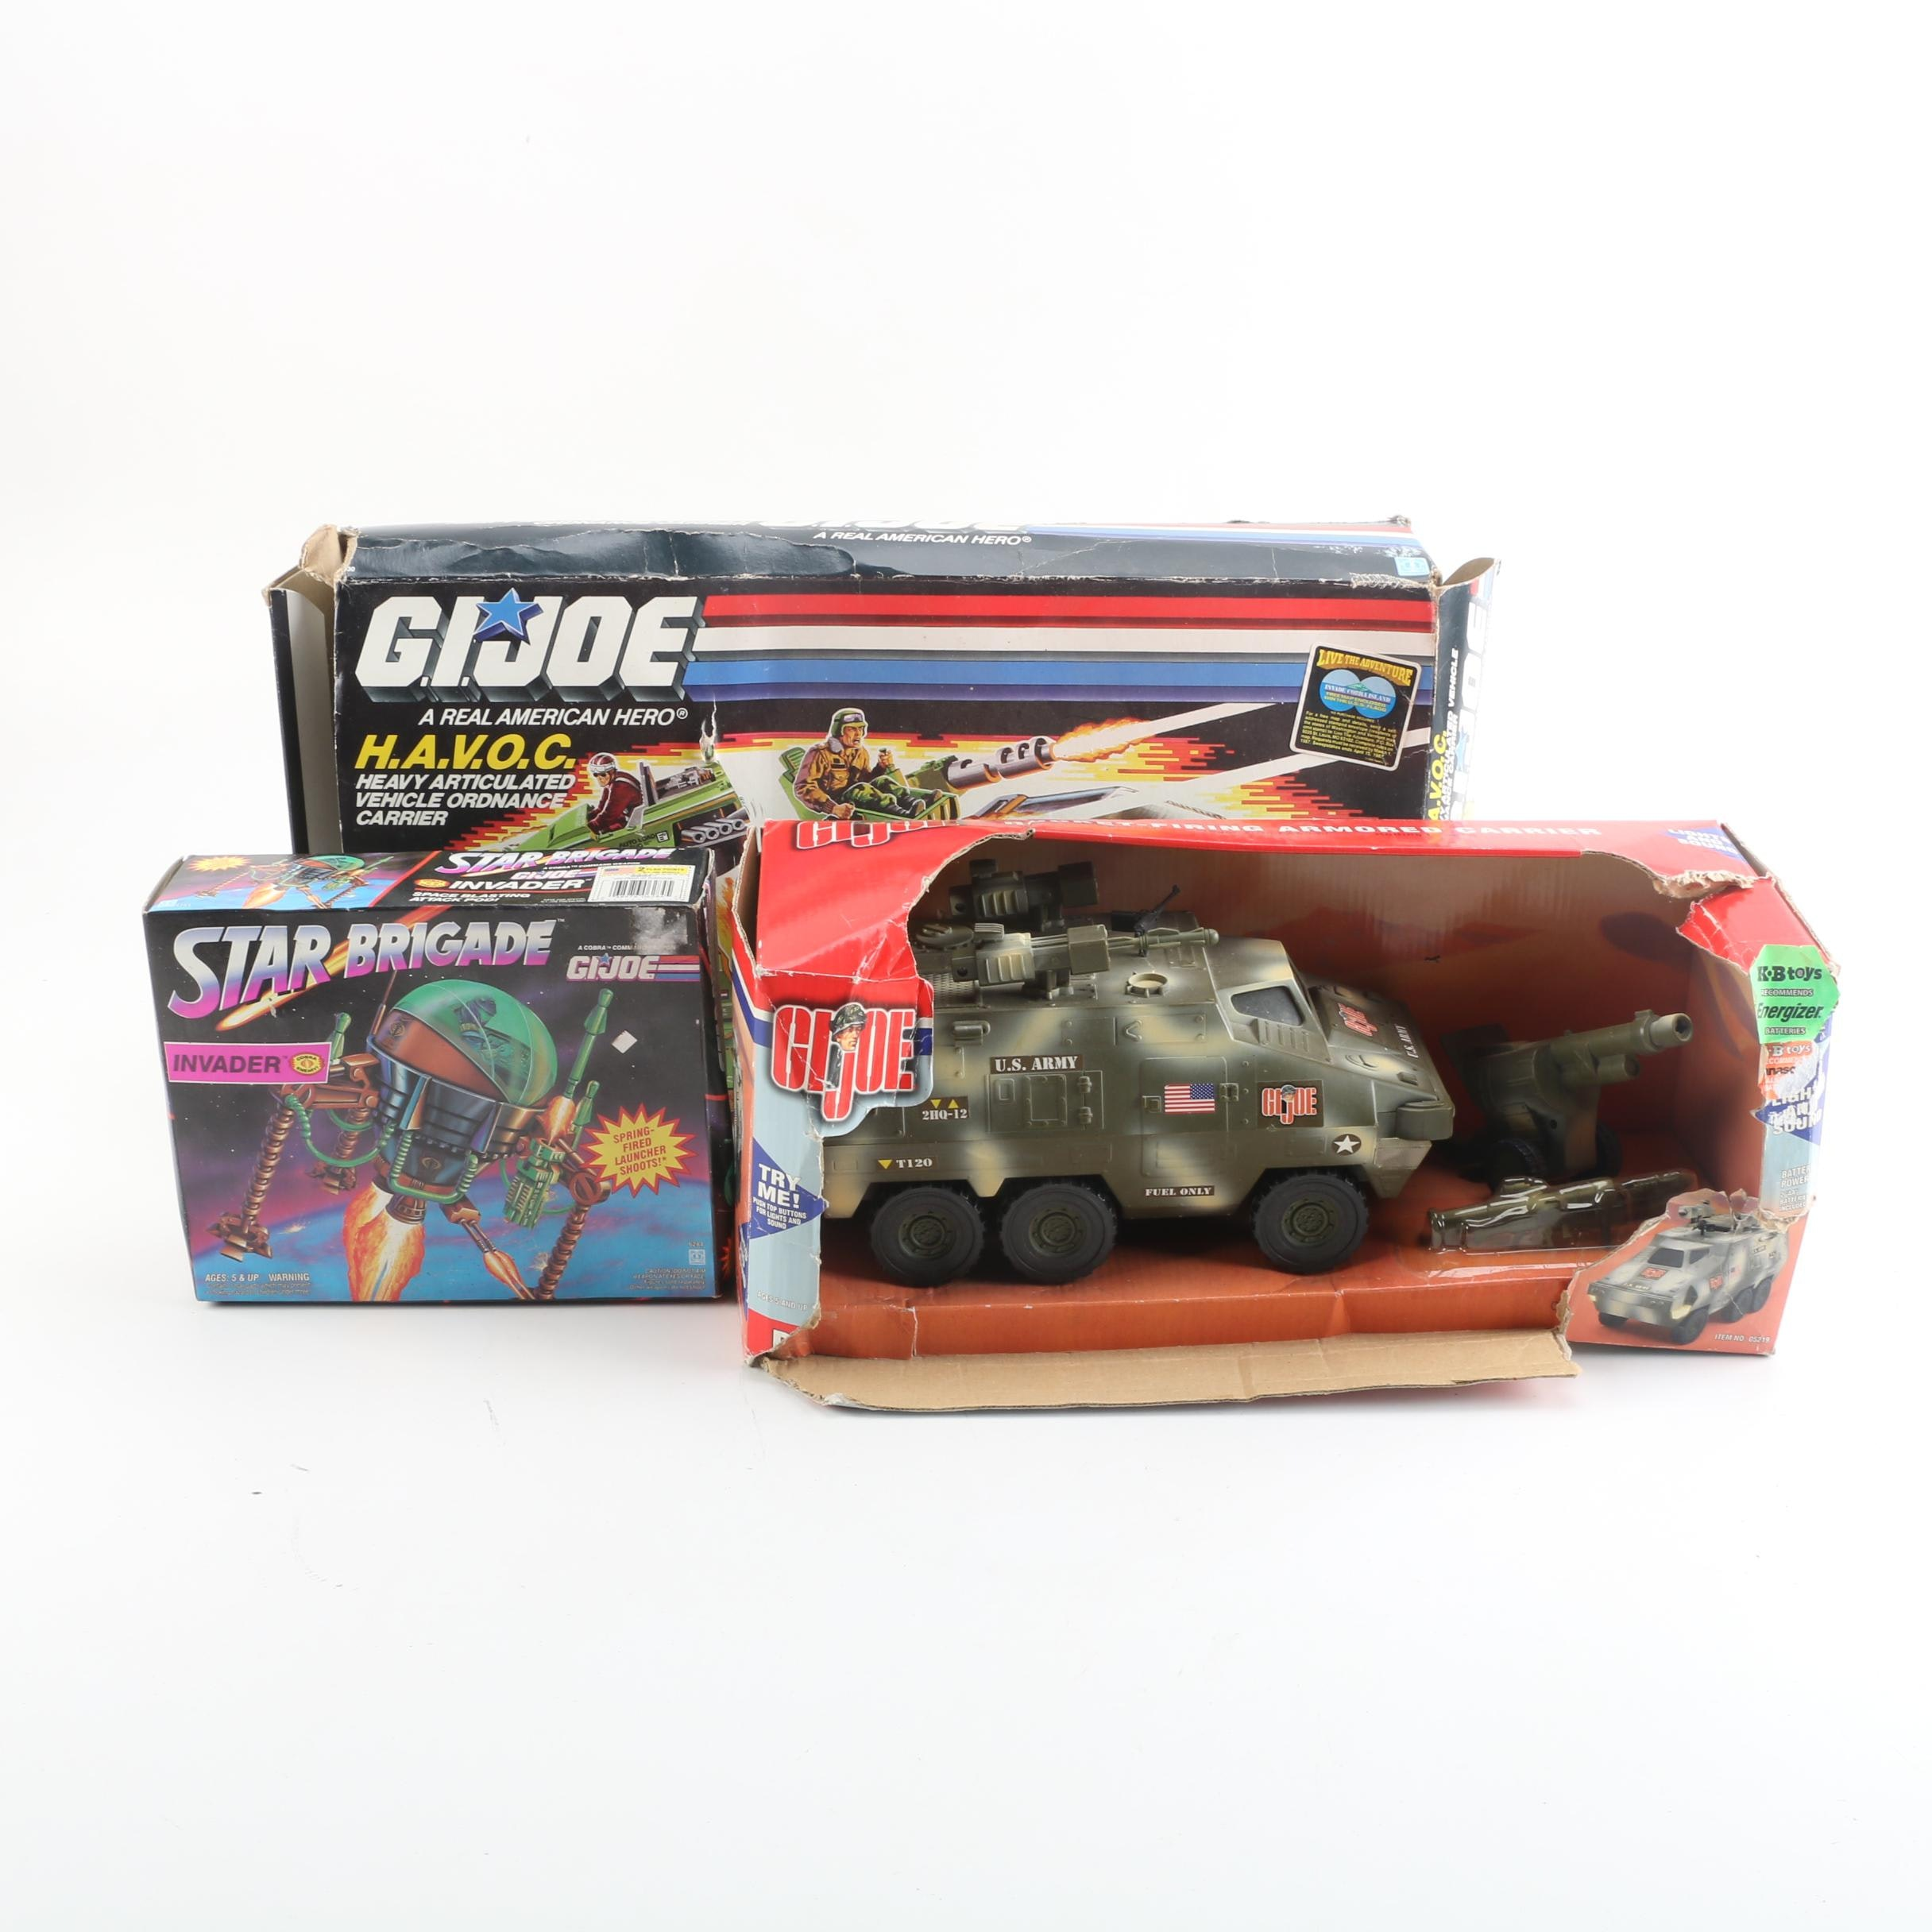 GI Joe Vehicles Including H.A.V.O.C.